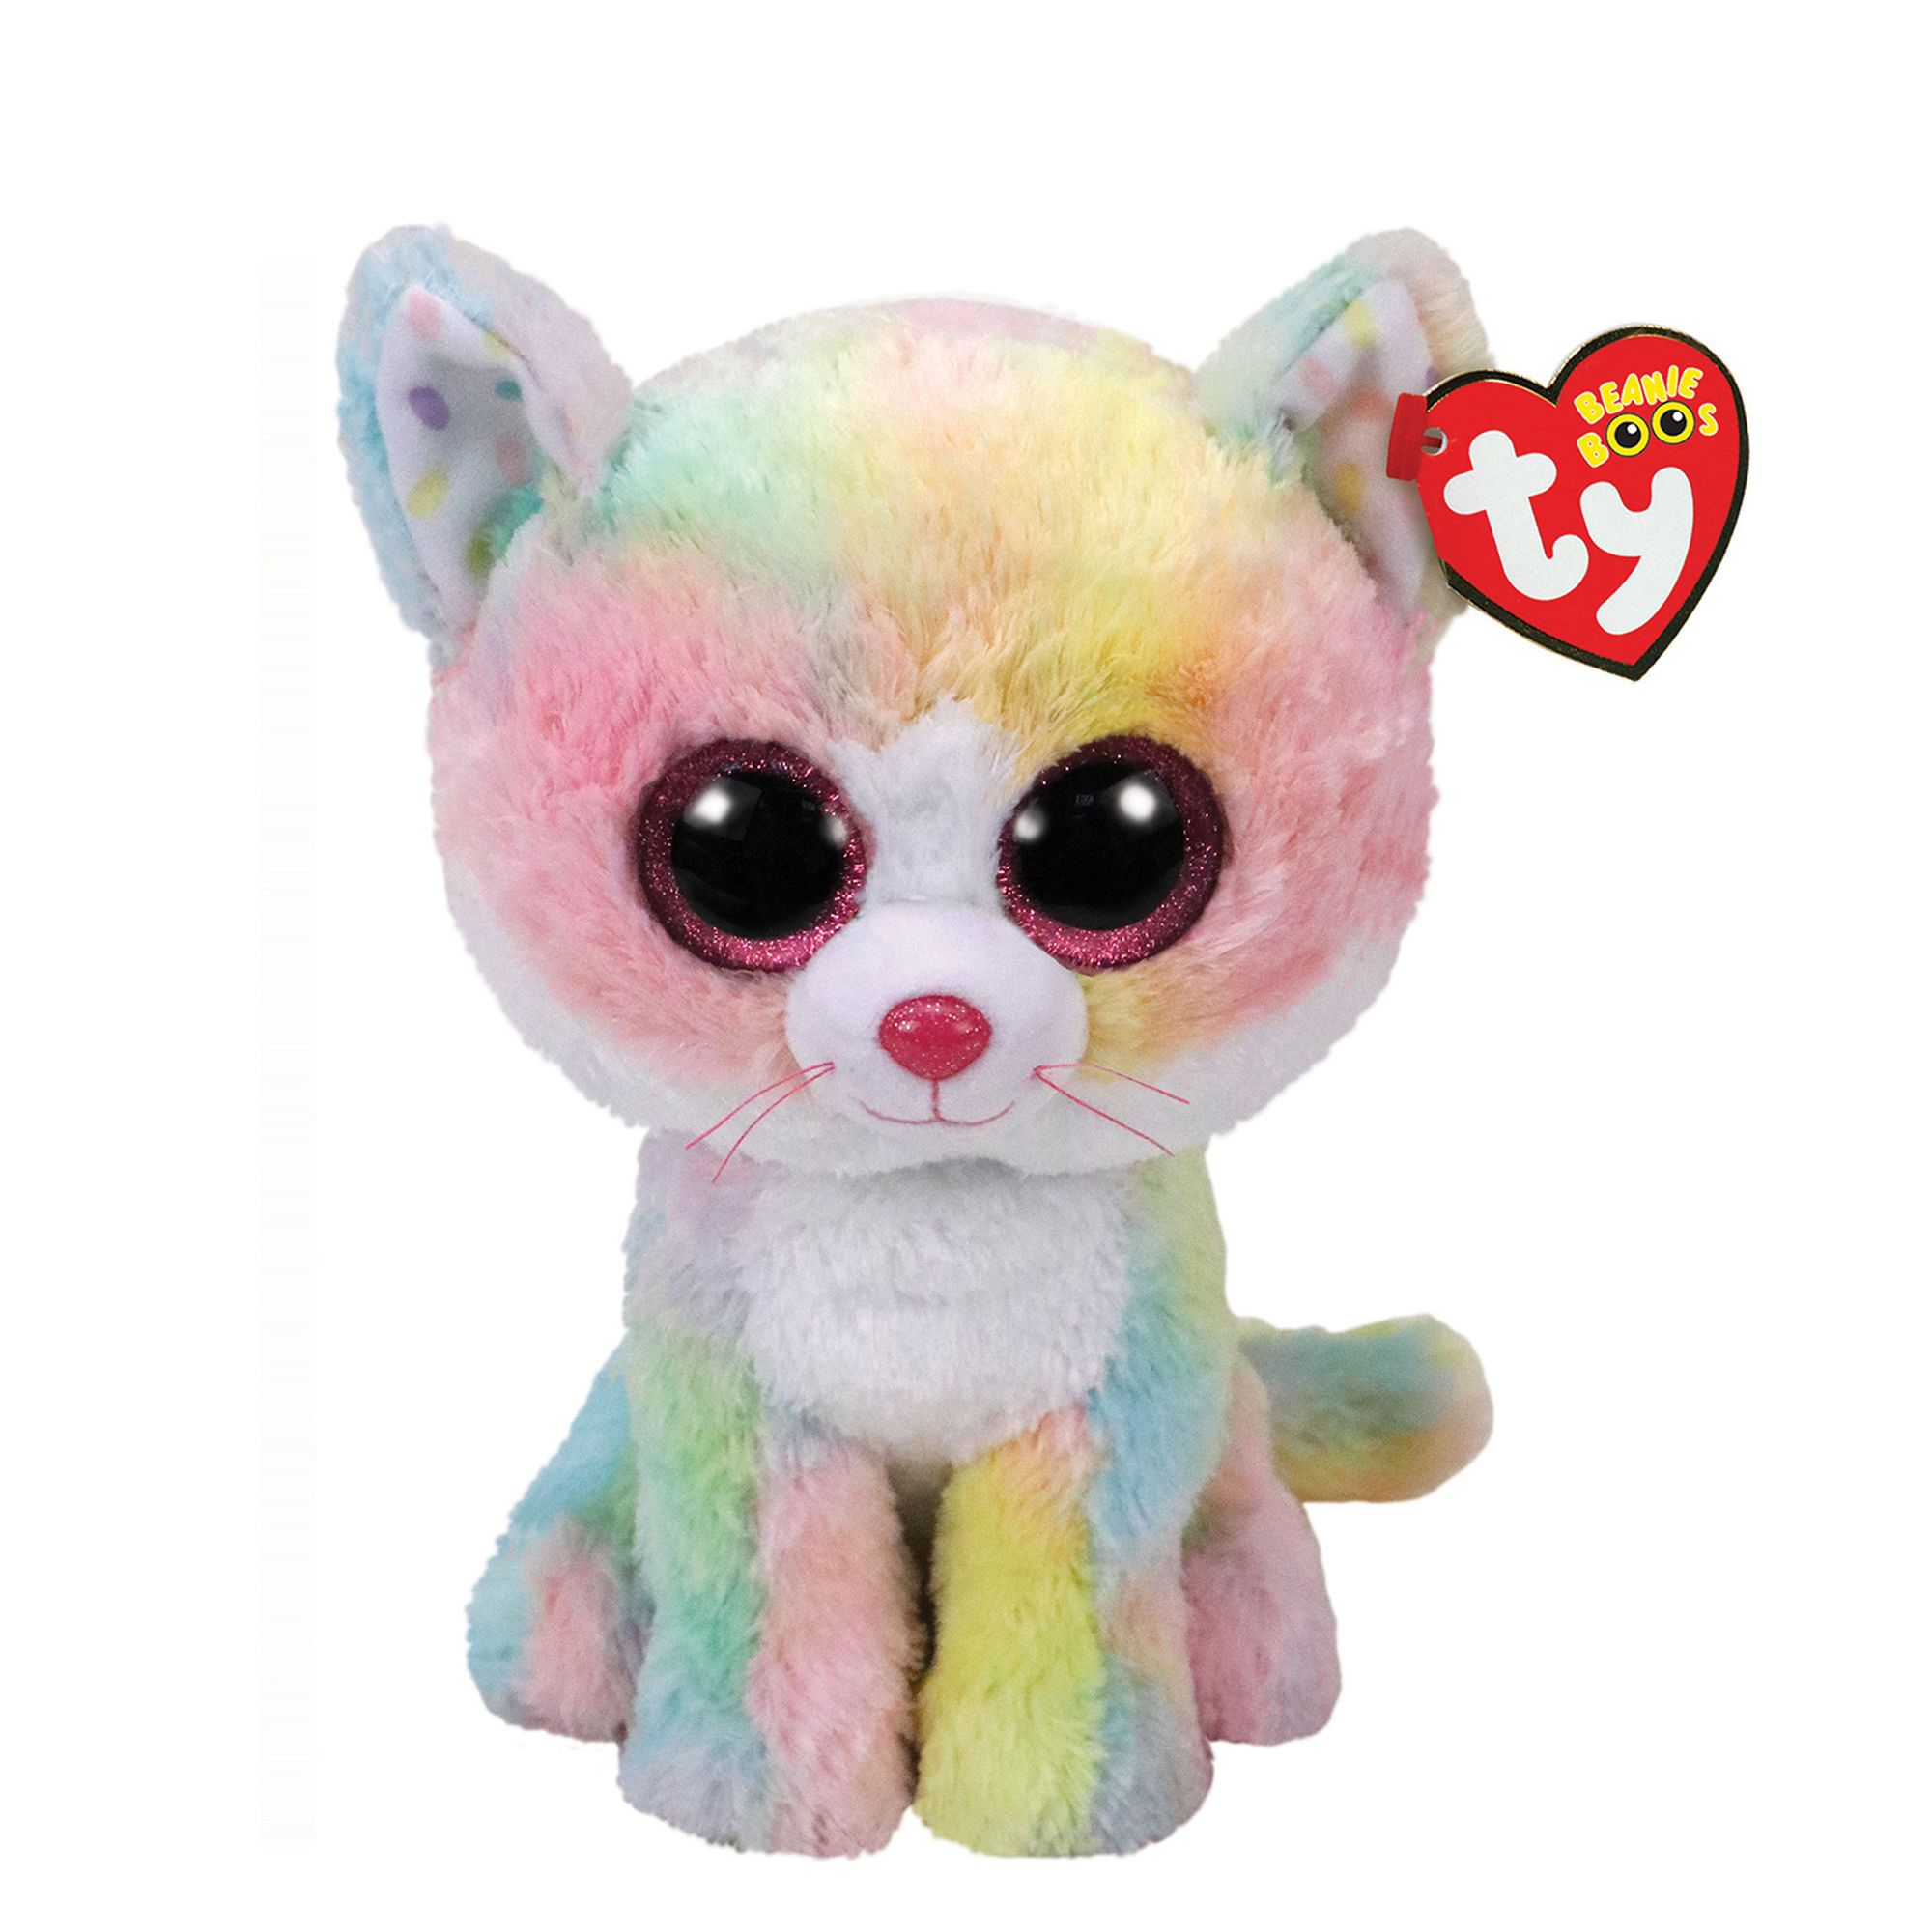 TY Beanie Boo Small Fluffy the Cat Plush Toy  d8a1292b68f6